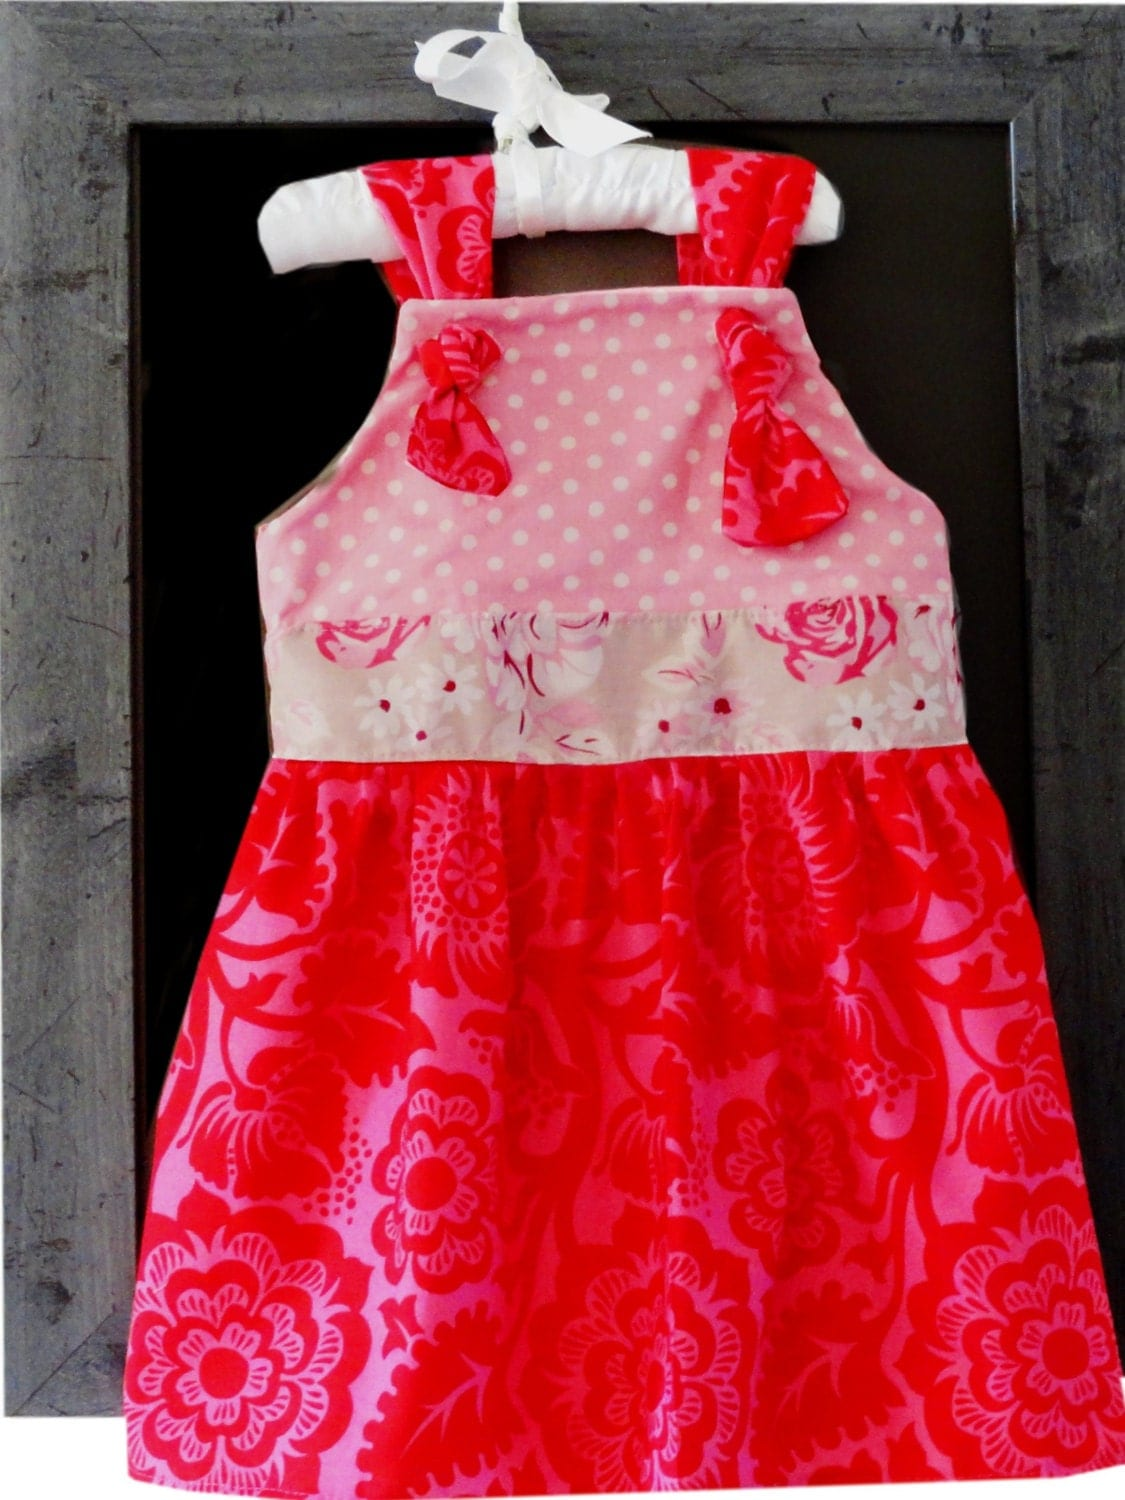 Girls Knot Dress Shabby Chic Valentine Ready to ship 2 - Amievoltaire